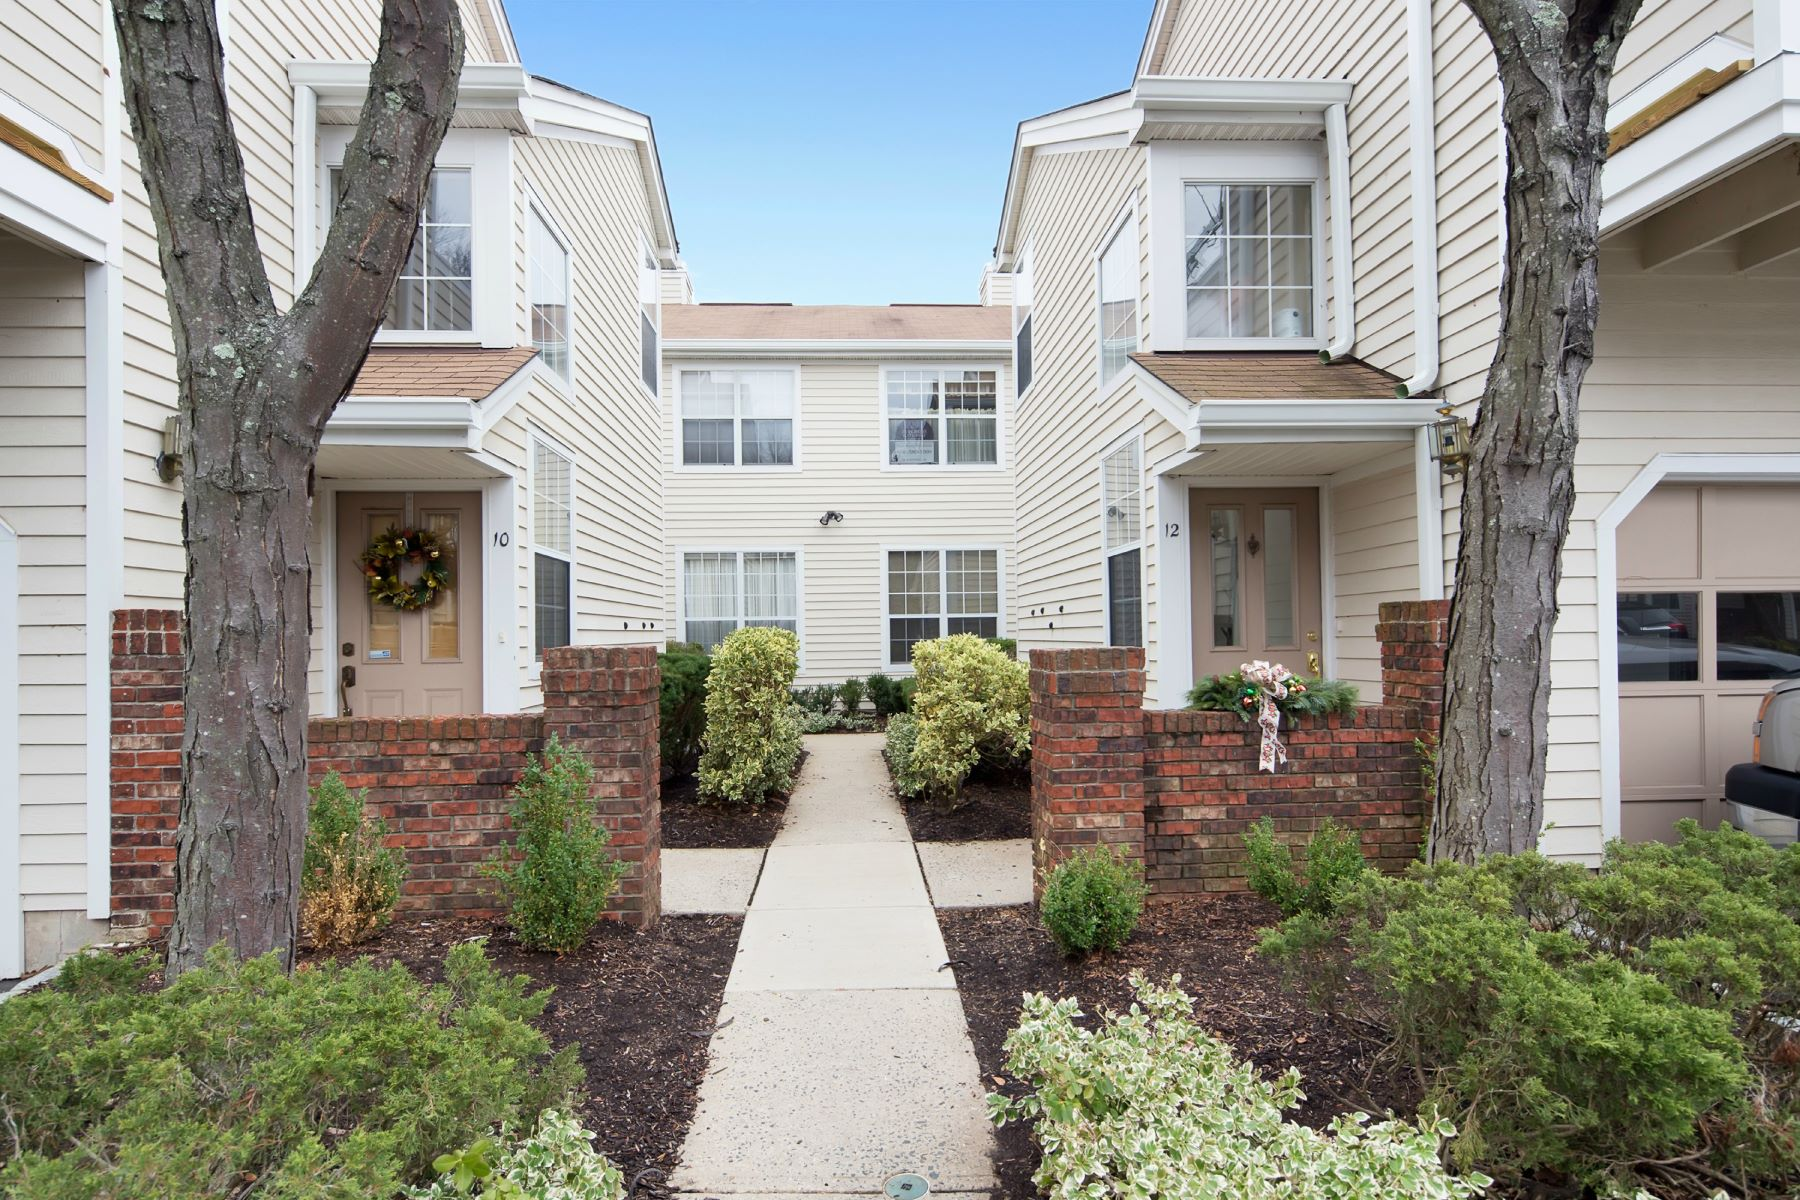 Townhouse for Rent at Beautifully Maintained Townhouse 6 Mallard Lane Bedminster, New Jersey 07921 United States